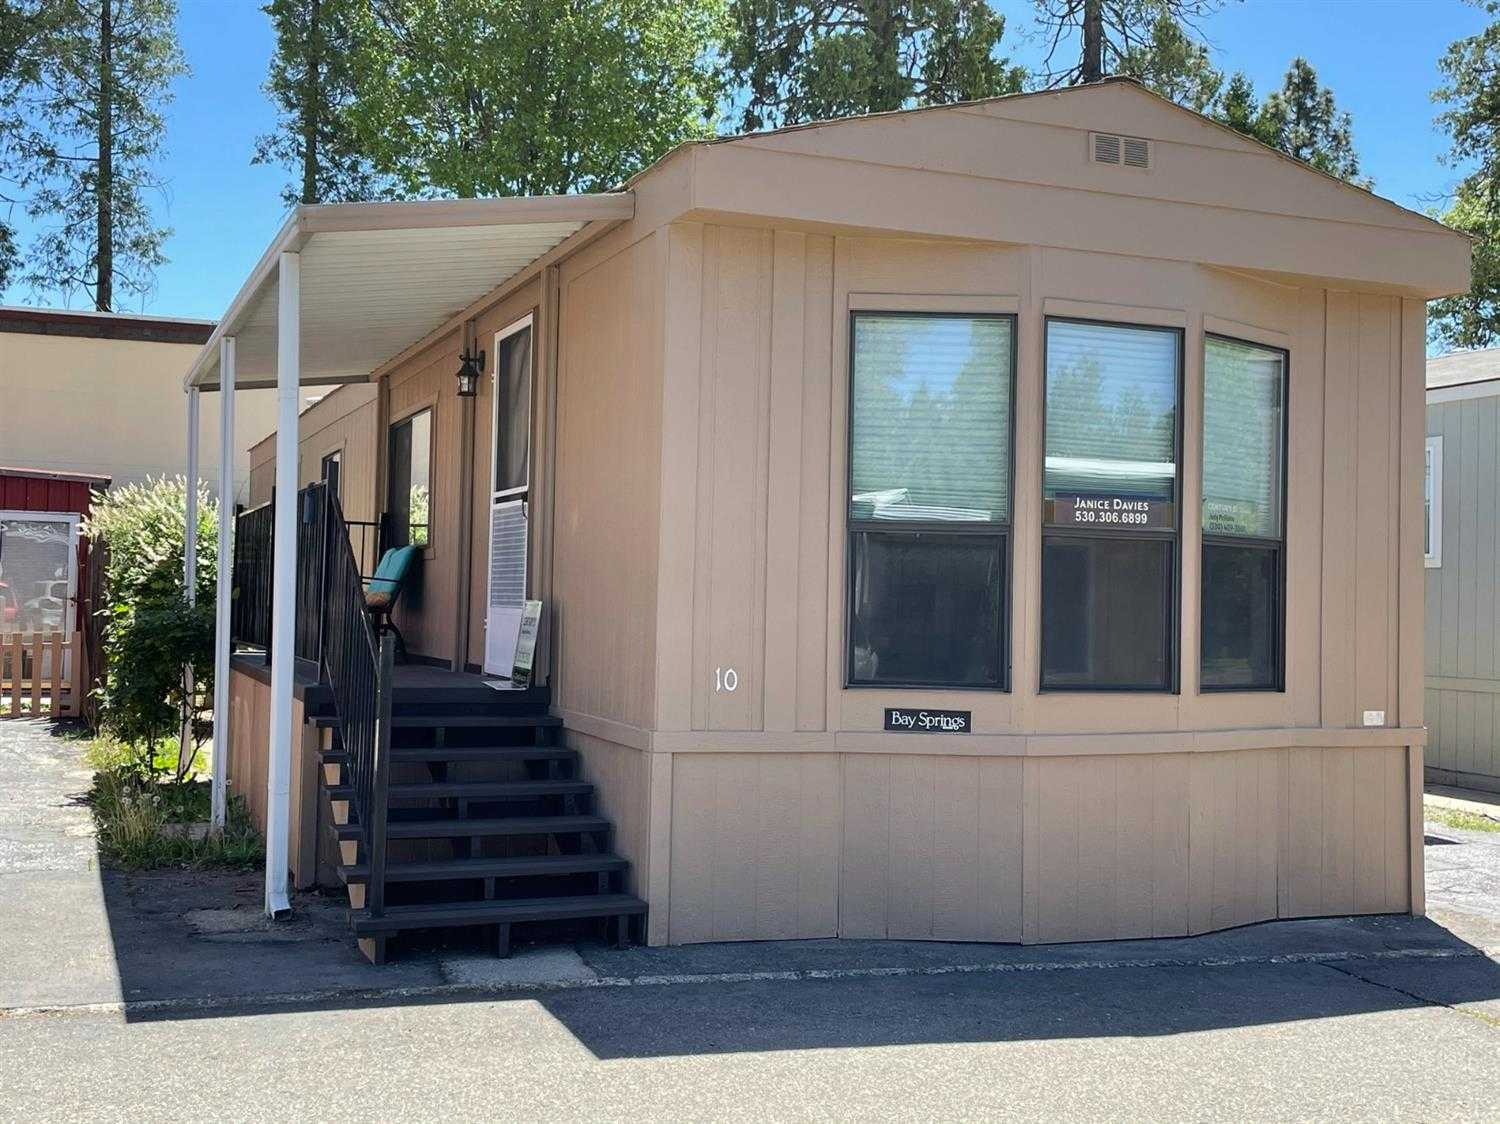 $65,000 - 2Br/1Ba -  for Sale in Pollock Pines